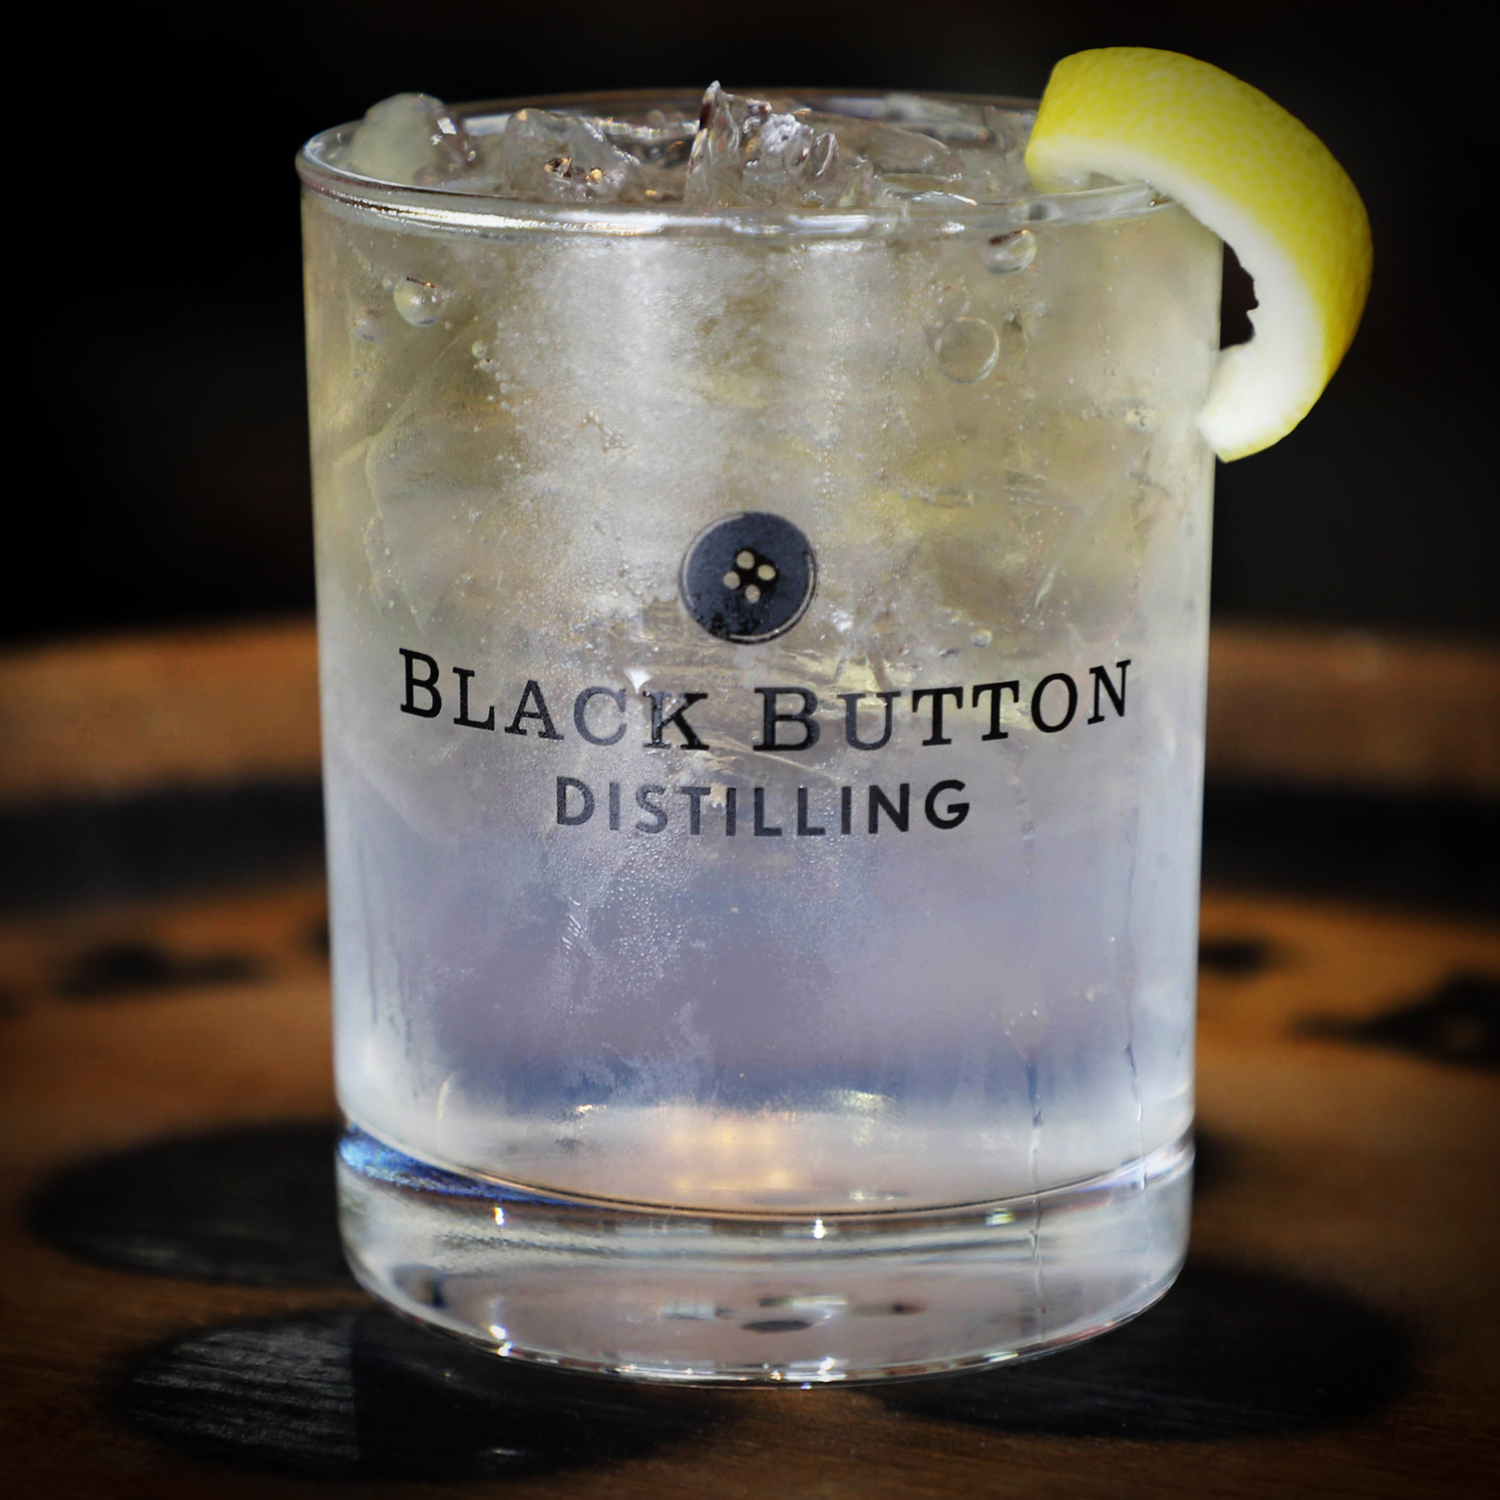 Black Button Distilling award winning citrus forward gin in a cocktail garnished with lemon